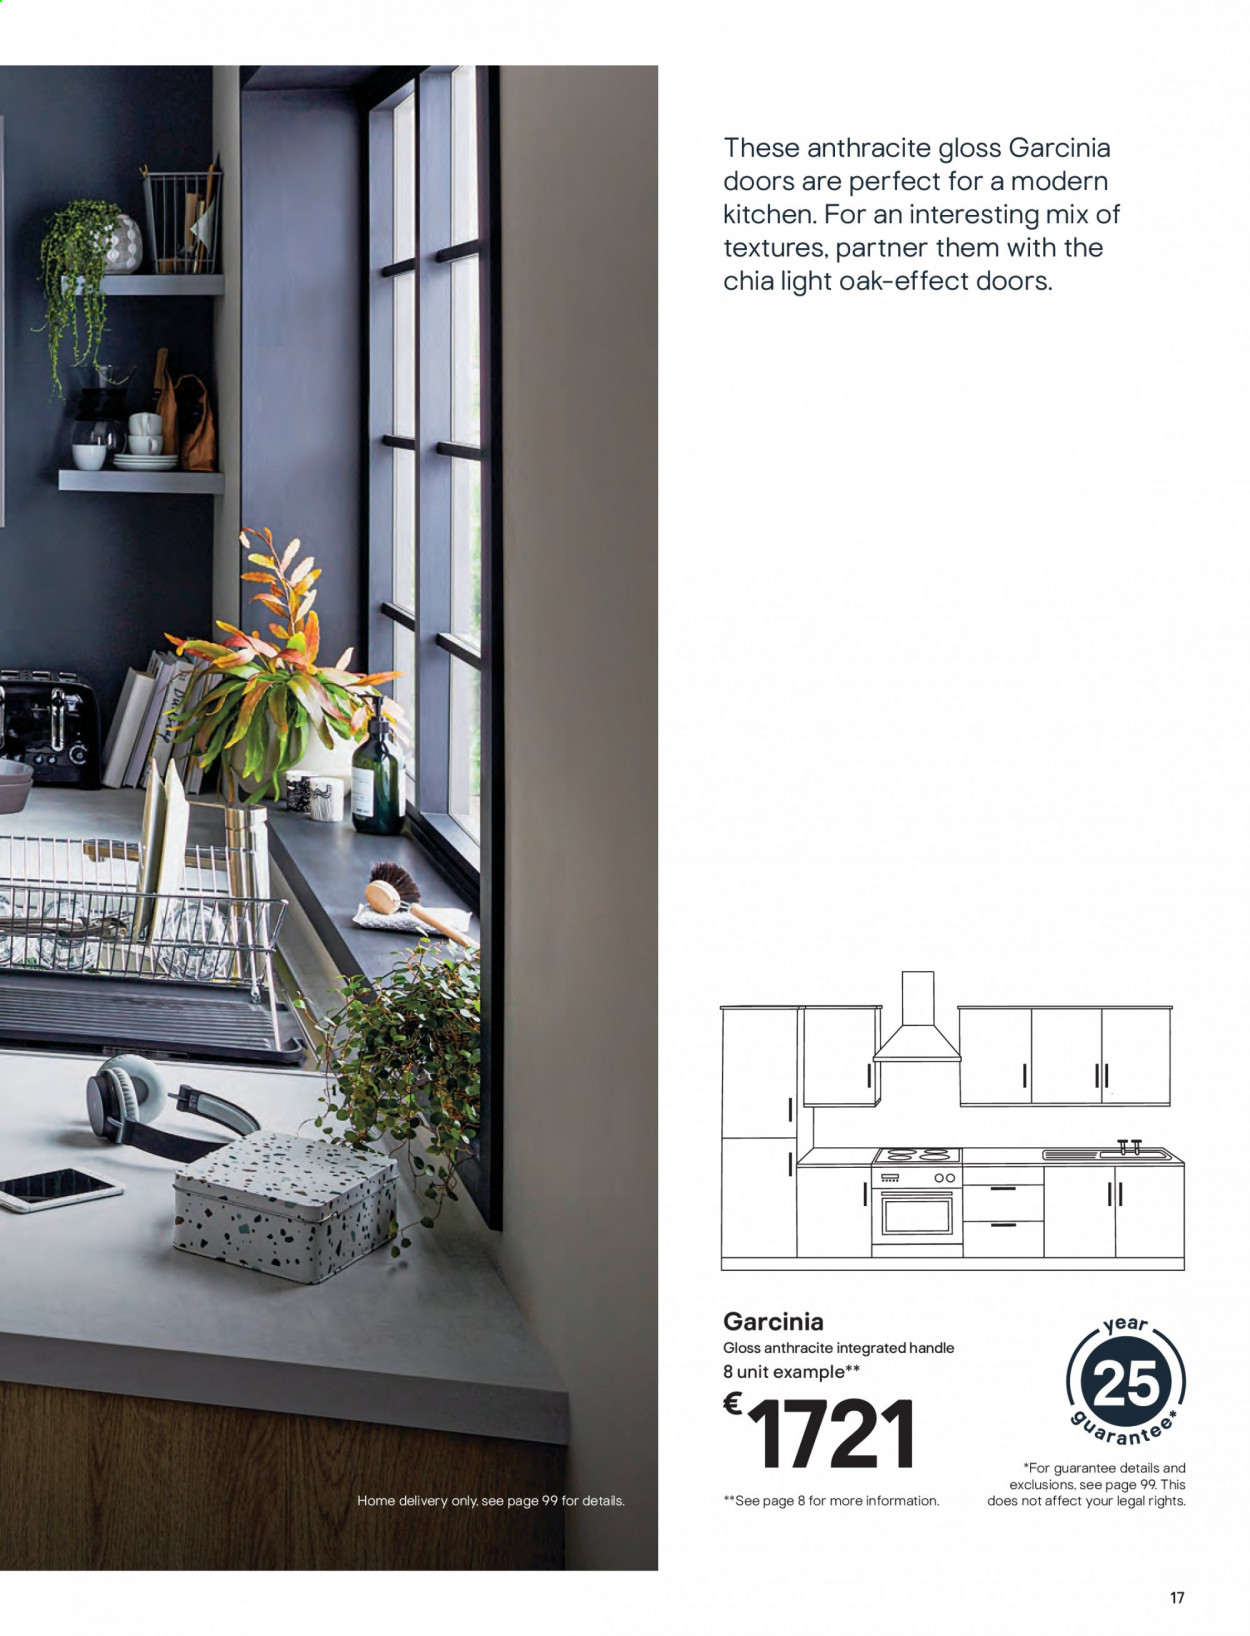 B&Q offer  - Sales products - door, handles, Kitchen. Page 17.